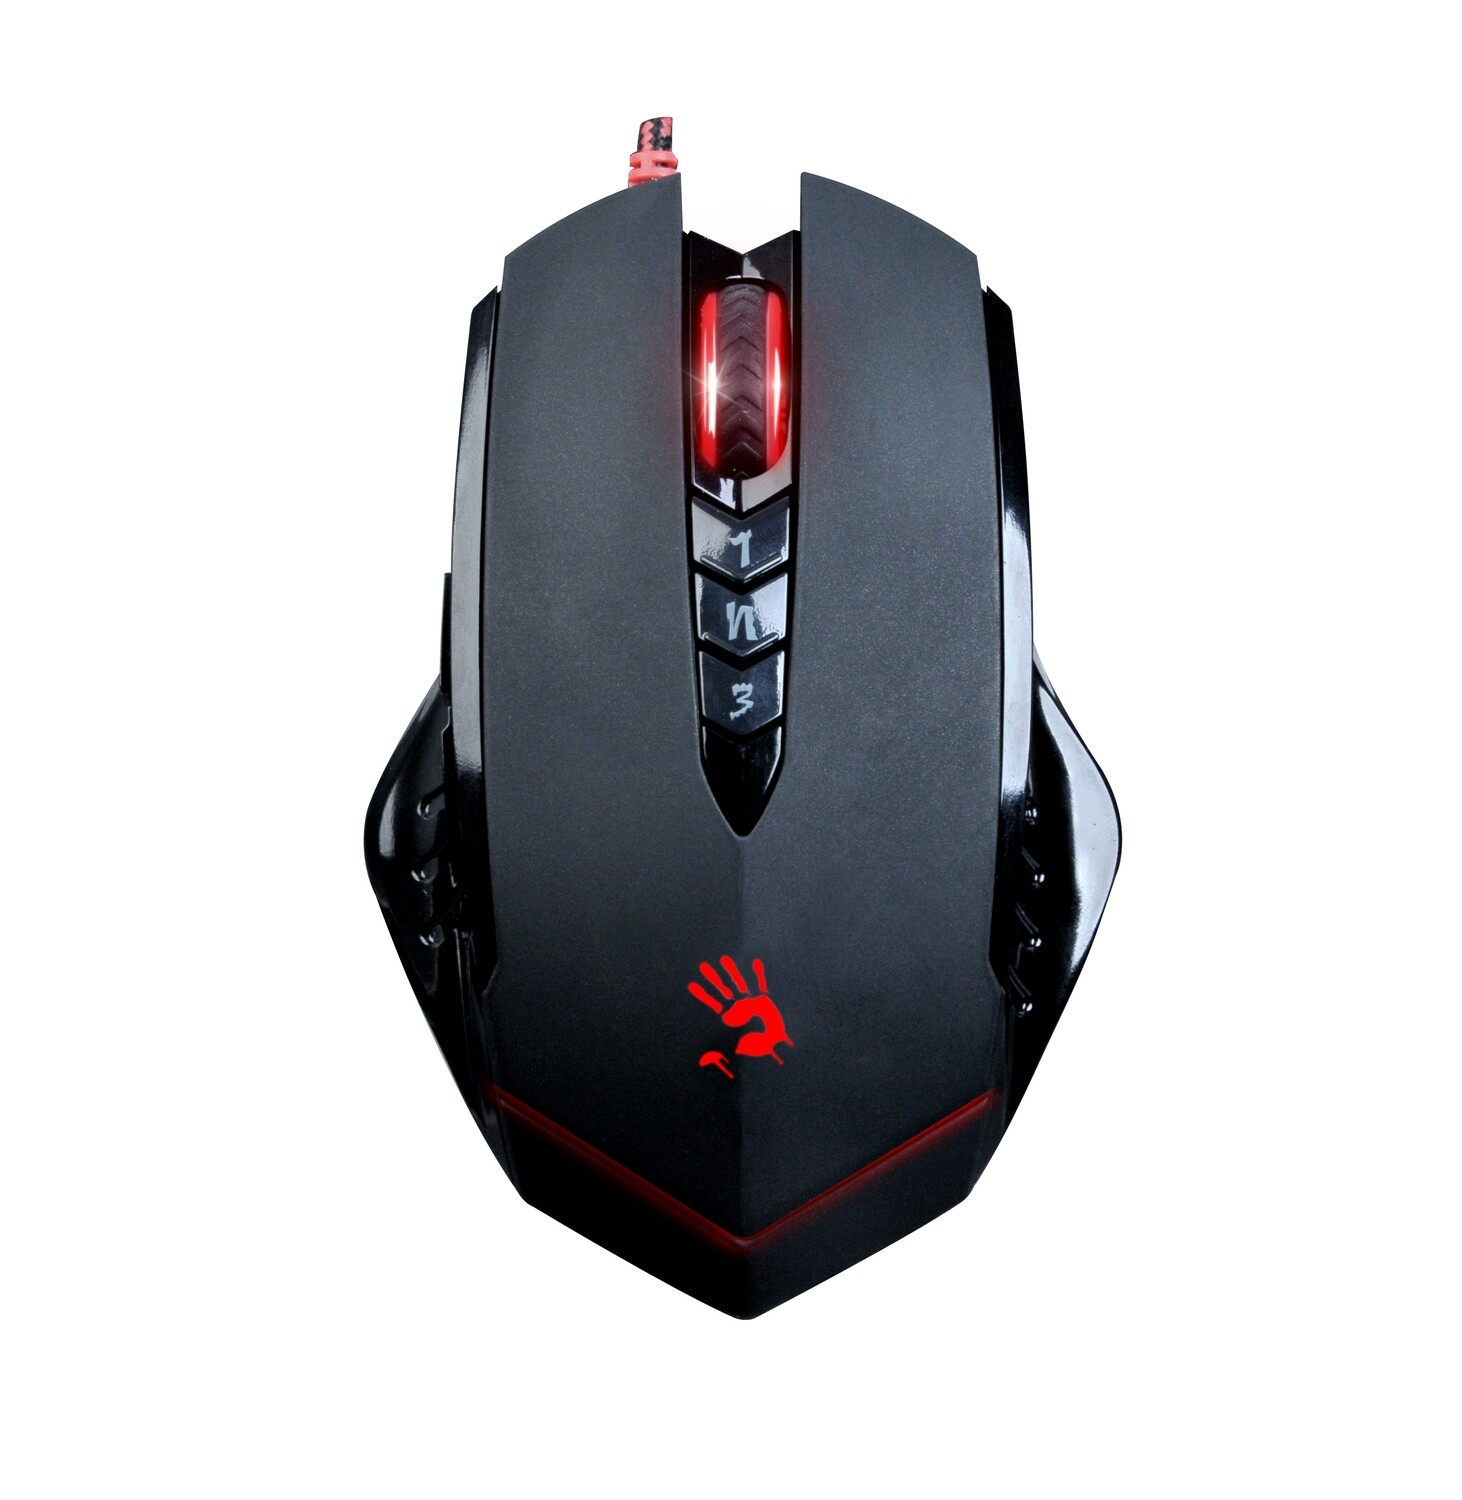 Bloody V8 Ergonomic Claw Grip Gaming Mouse with Rubberized Black Coating - 8 Programmable Buttons - 3200 DPI